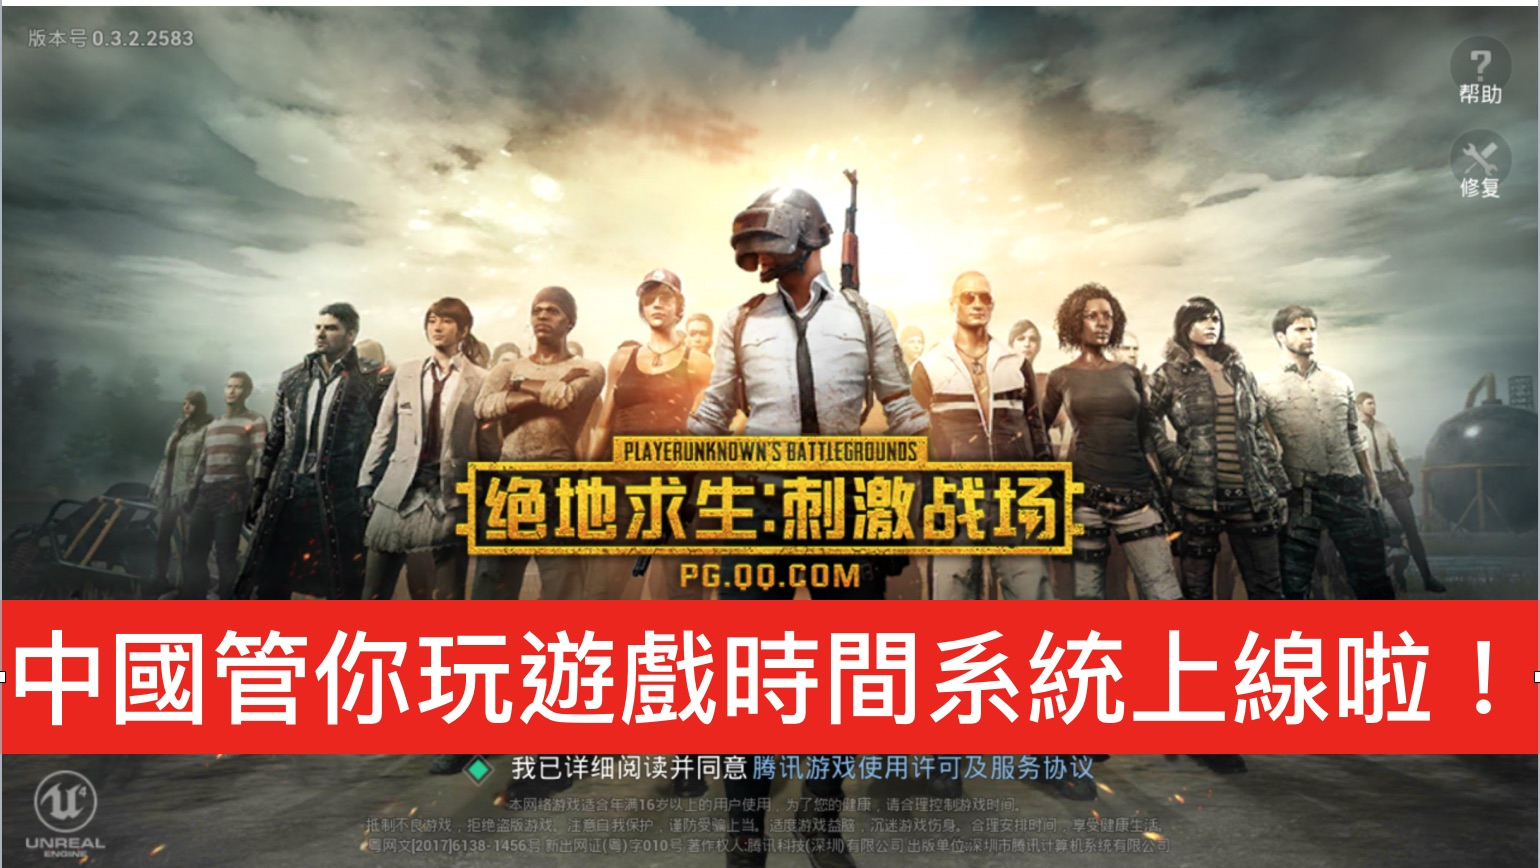 PlayerUnknown's Battlegrounds, PUBG MOBILE, Video Games, Battle royale game, Android, iOS, Clash Royale, Fortnite, Tencent Games, , pubg android screenshots, Movie, Poster, Font, Sky, Album cover, Action film